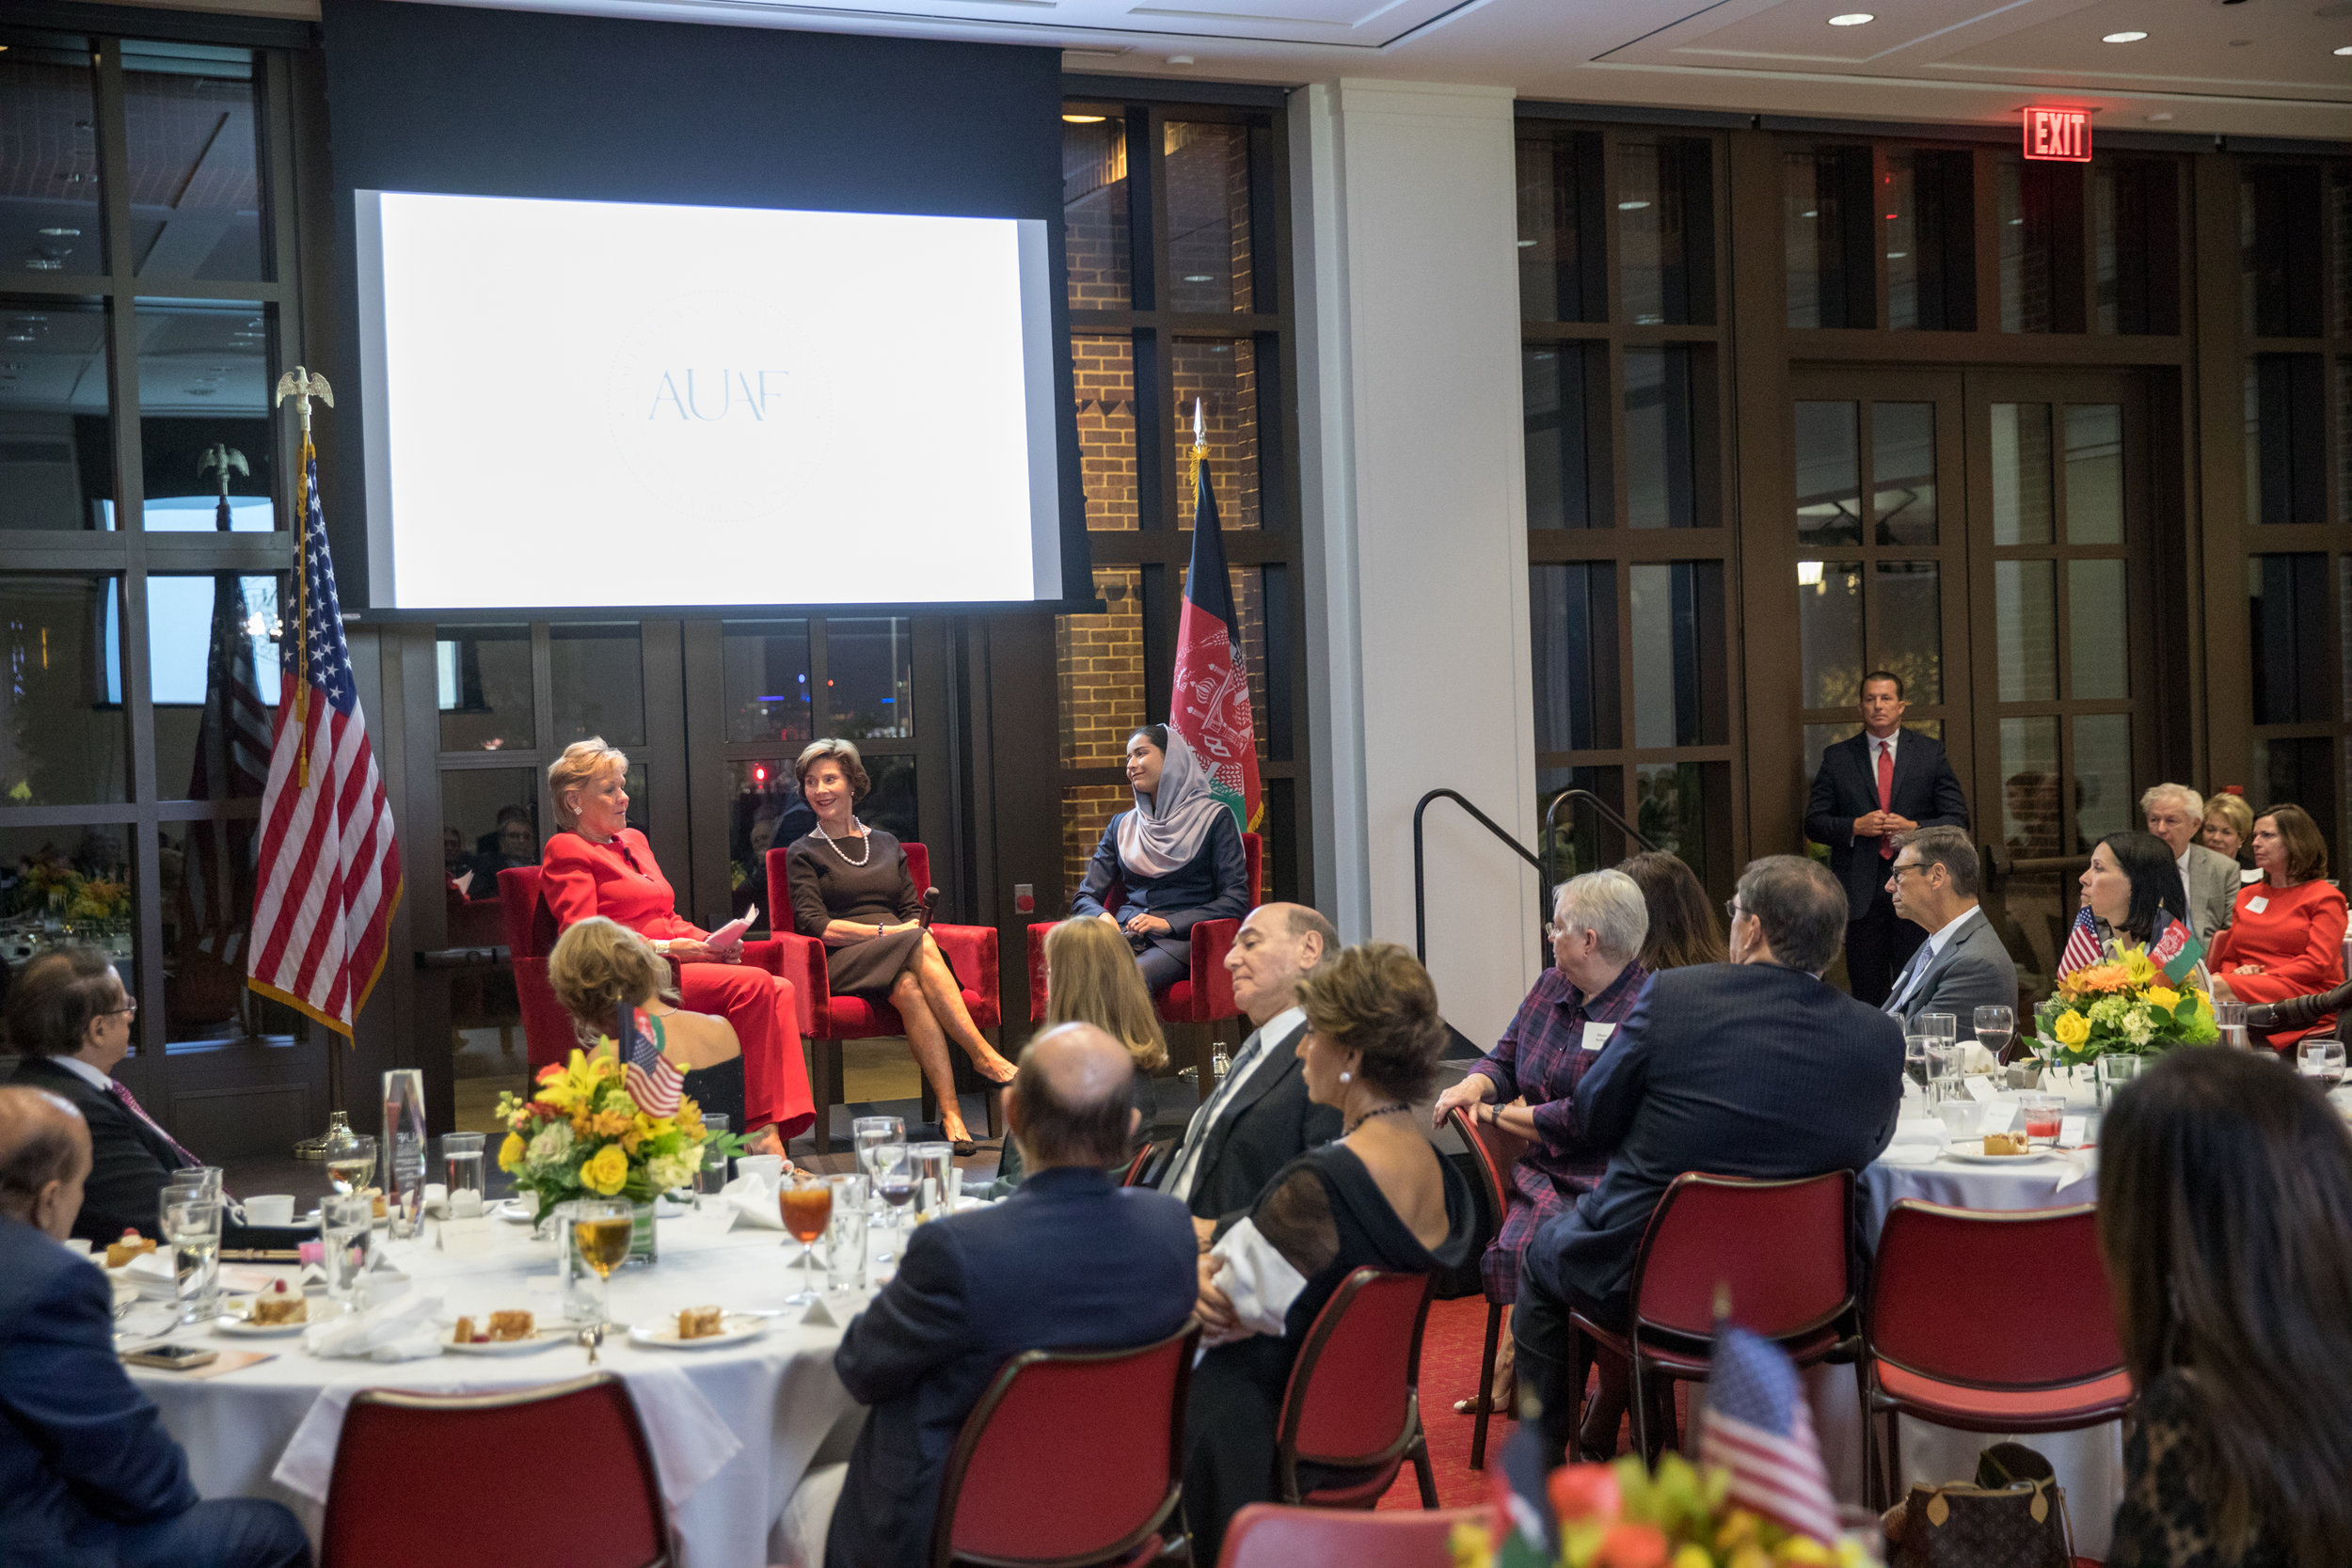 Former First Lady Laura Bush speaks on a panel with FAUAF at the George W. Bush Presidential Library in 2017.